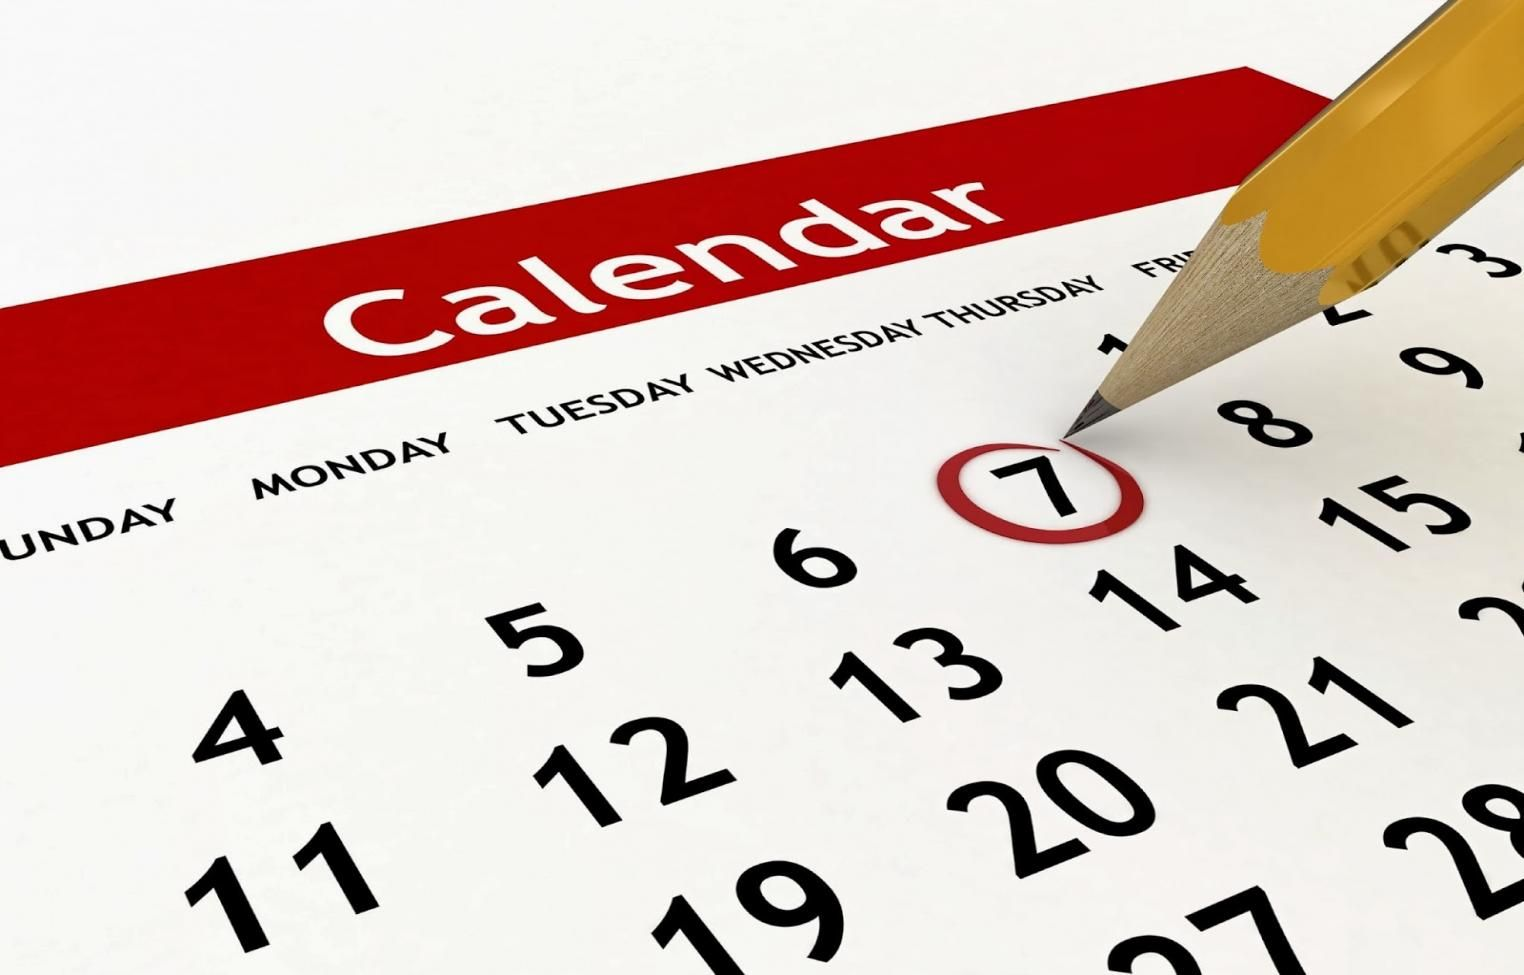 Innovation Habit #1: Put It On the Calendar